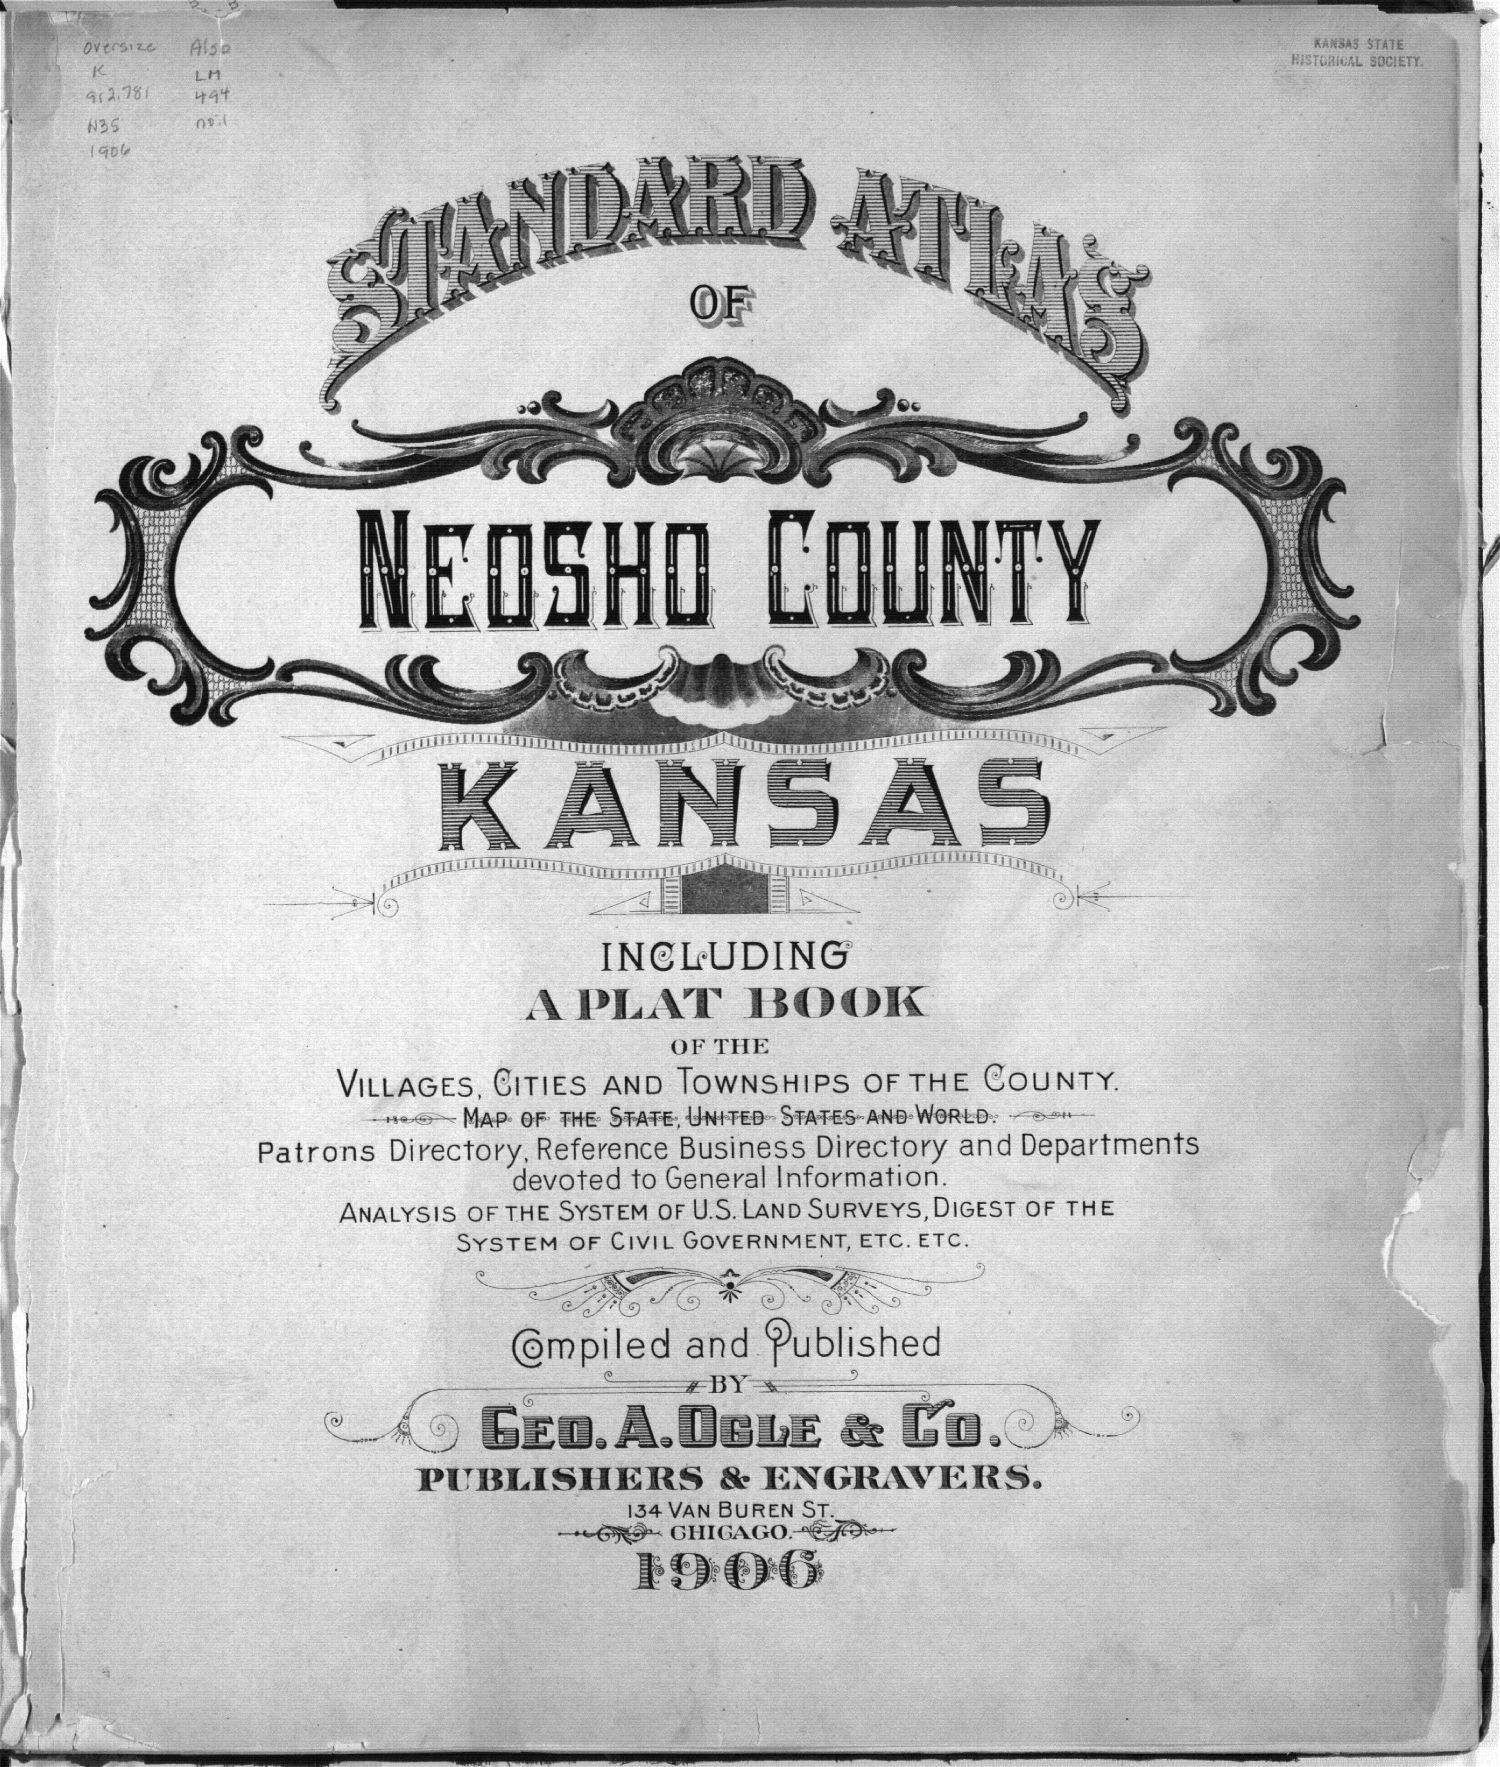 Standard atlas of Neosho County, Kansas - Title Page